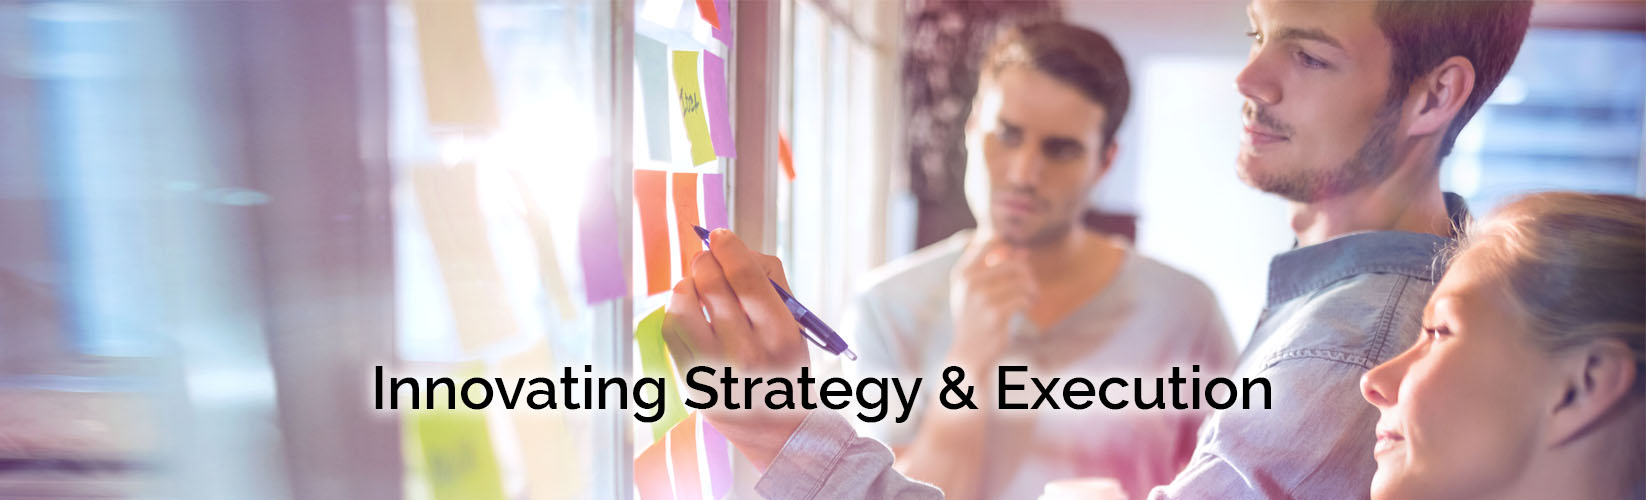 Innovating Strategy and Execution